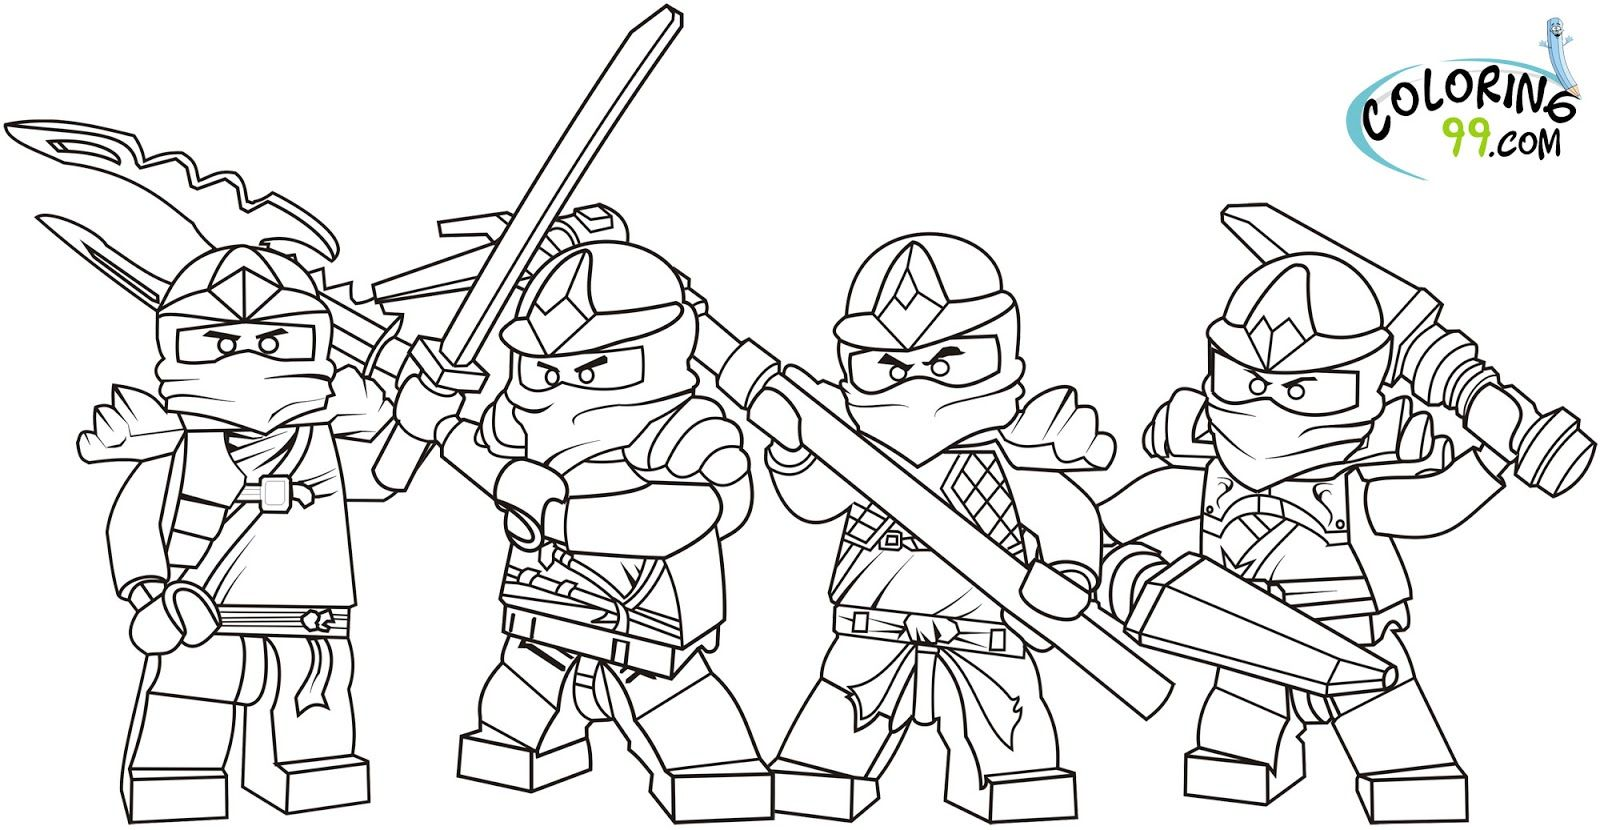 lego dc super heros caloring pages | Lego Ninjago Coloring Pages ...